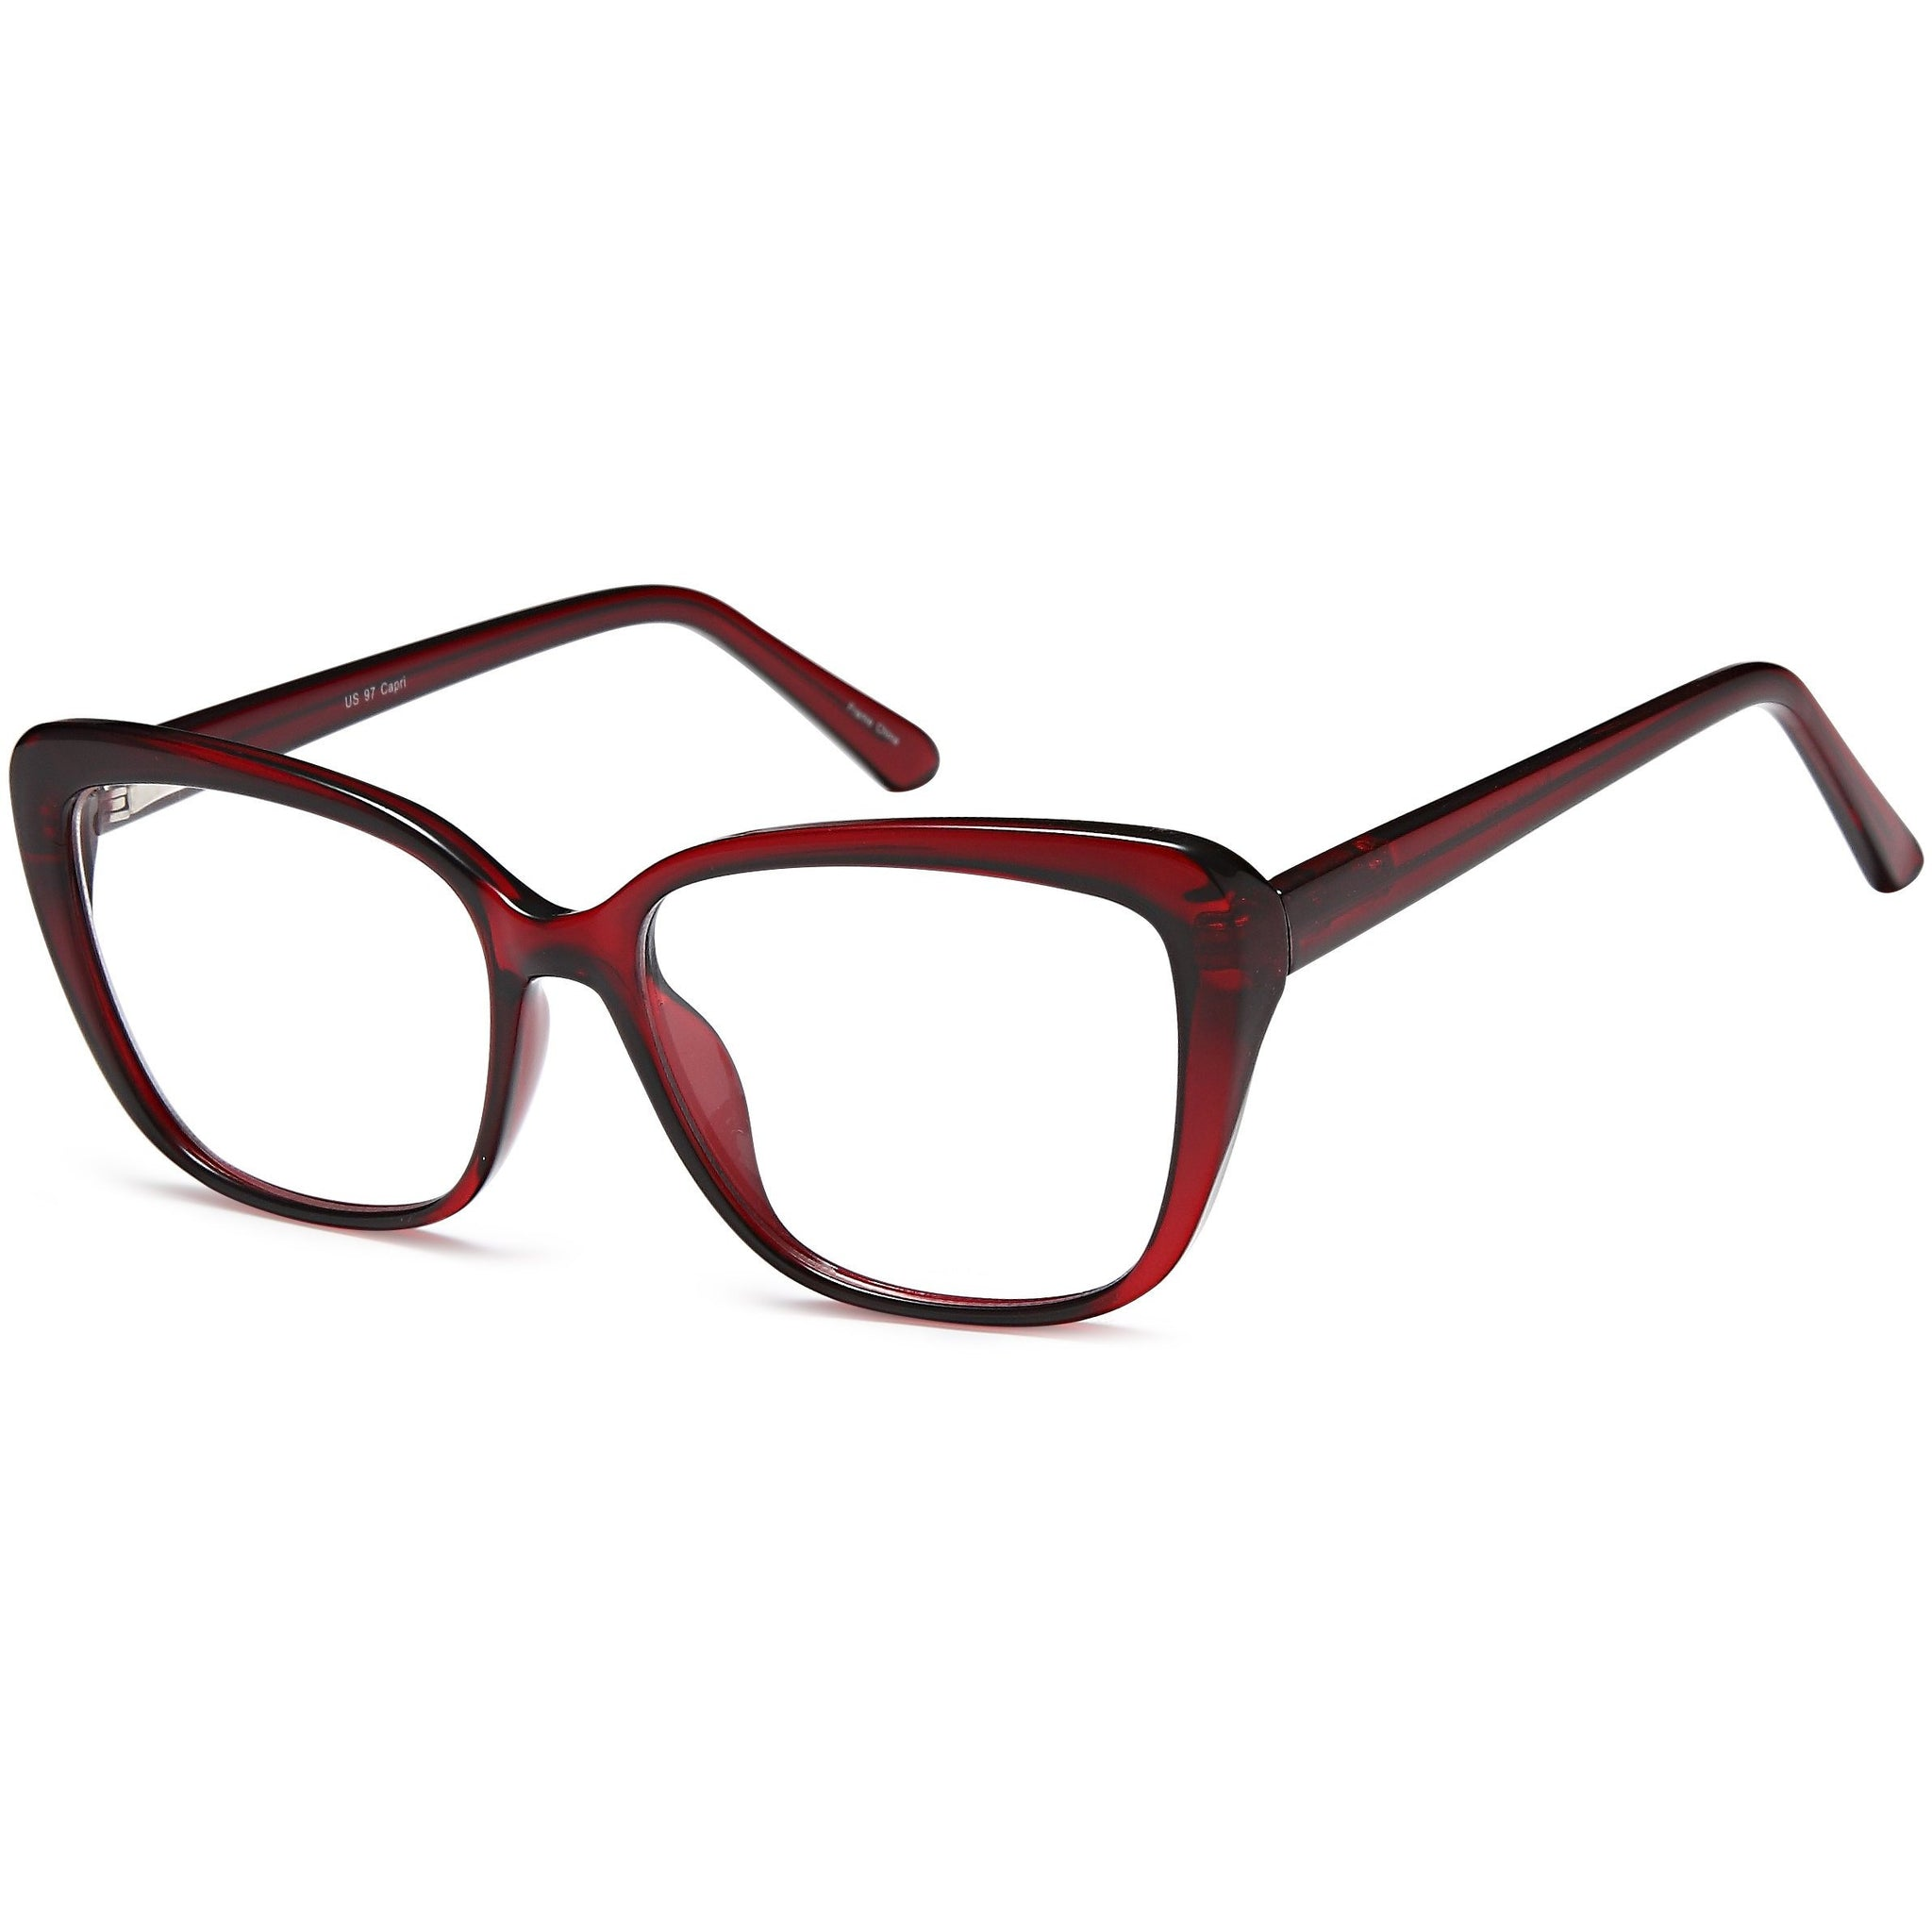 2U Prescription Glasses US 97 Optical Eyeglasses Frame